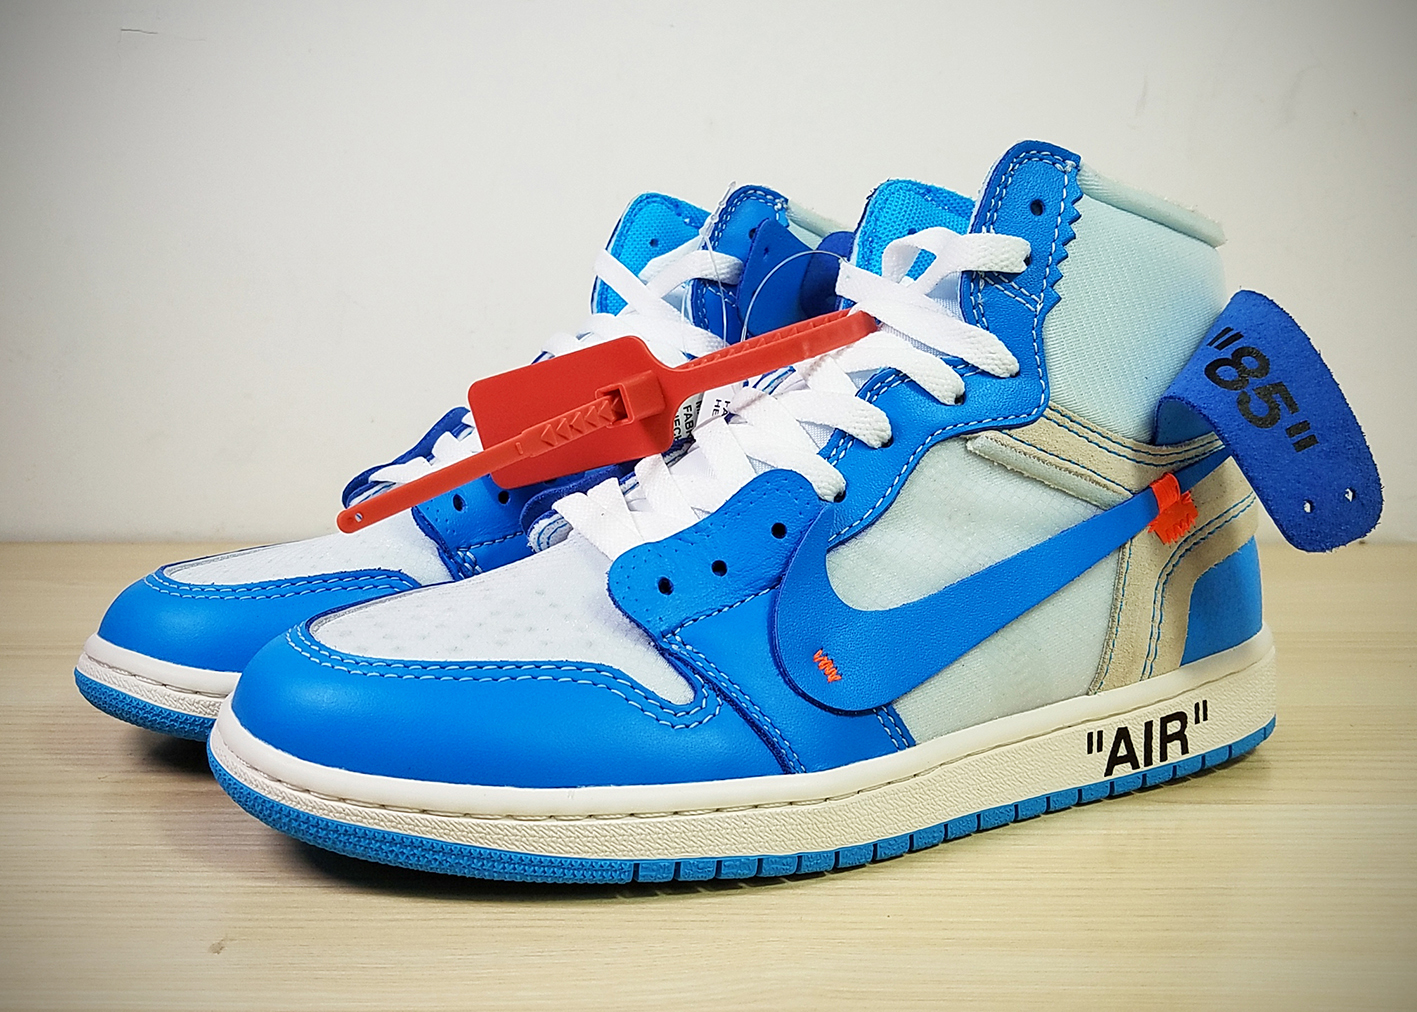 Off-white Air Jordan 1 UNC Shoes